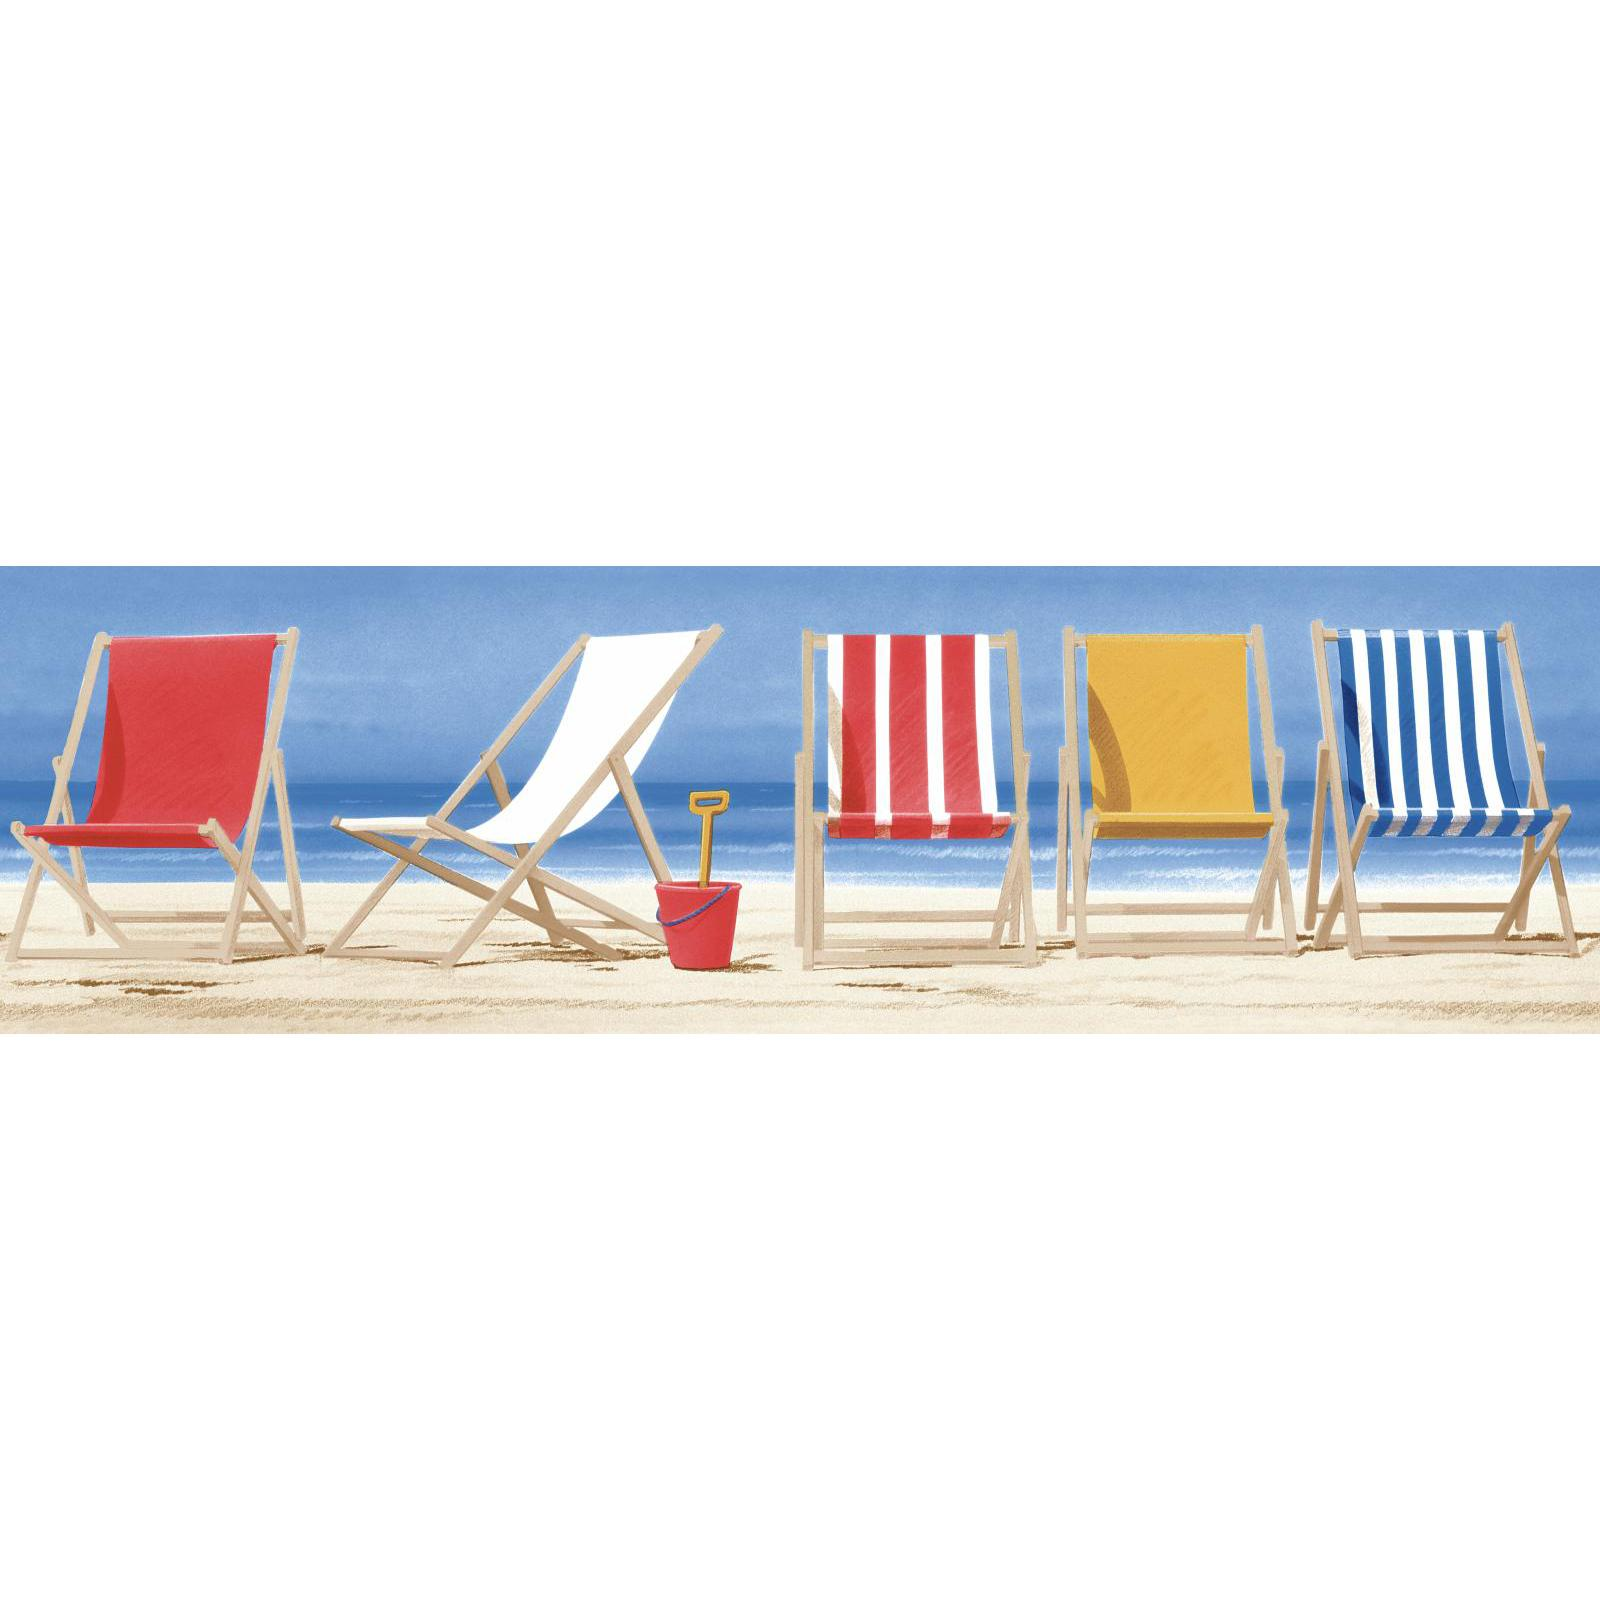 sailcloth beach chairs folding camping picnic table and york wallcoverings border in blue red yellow